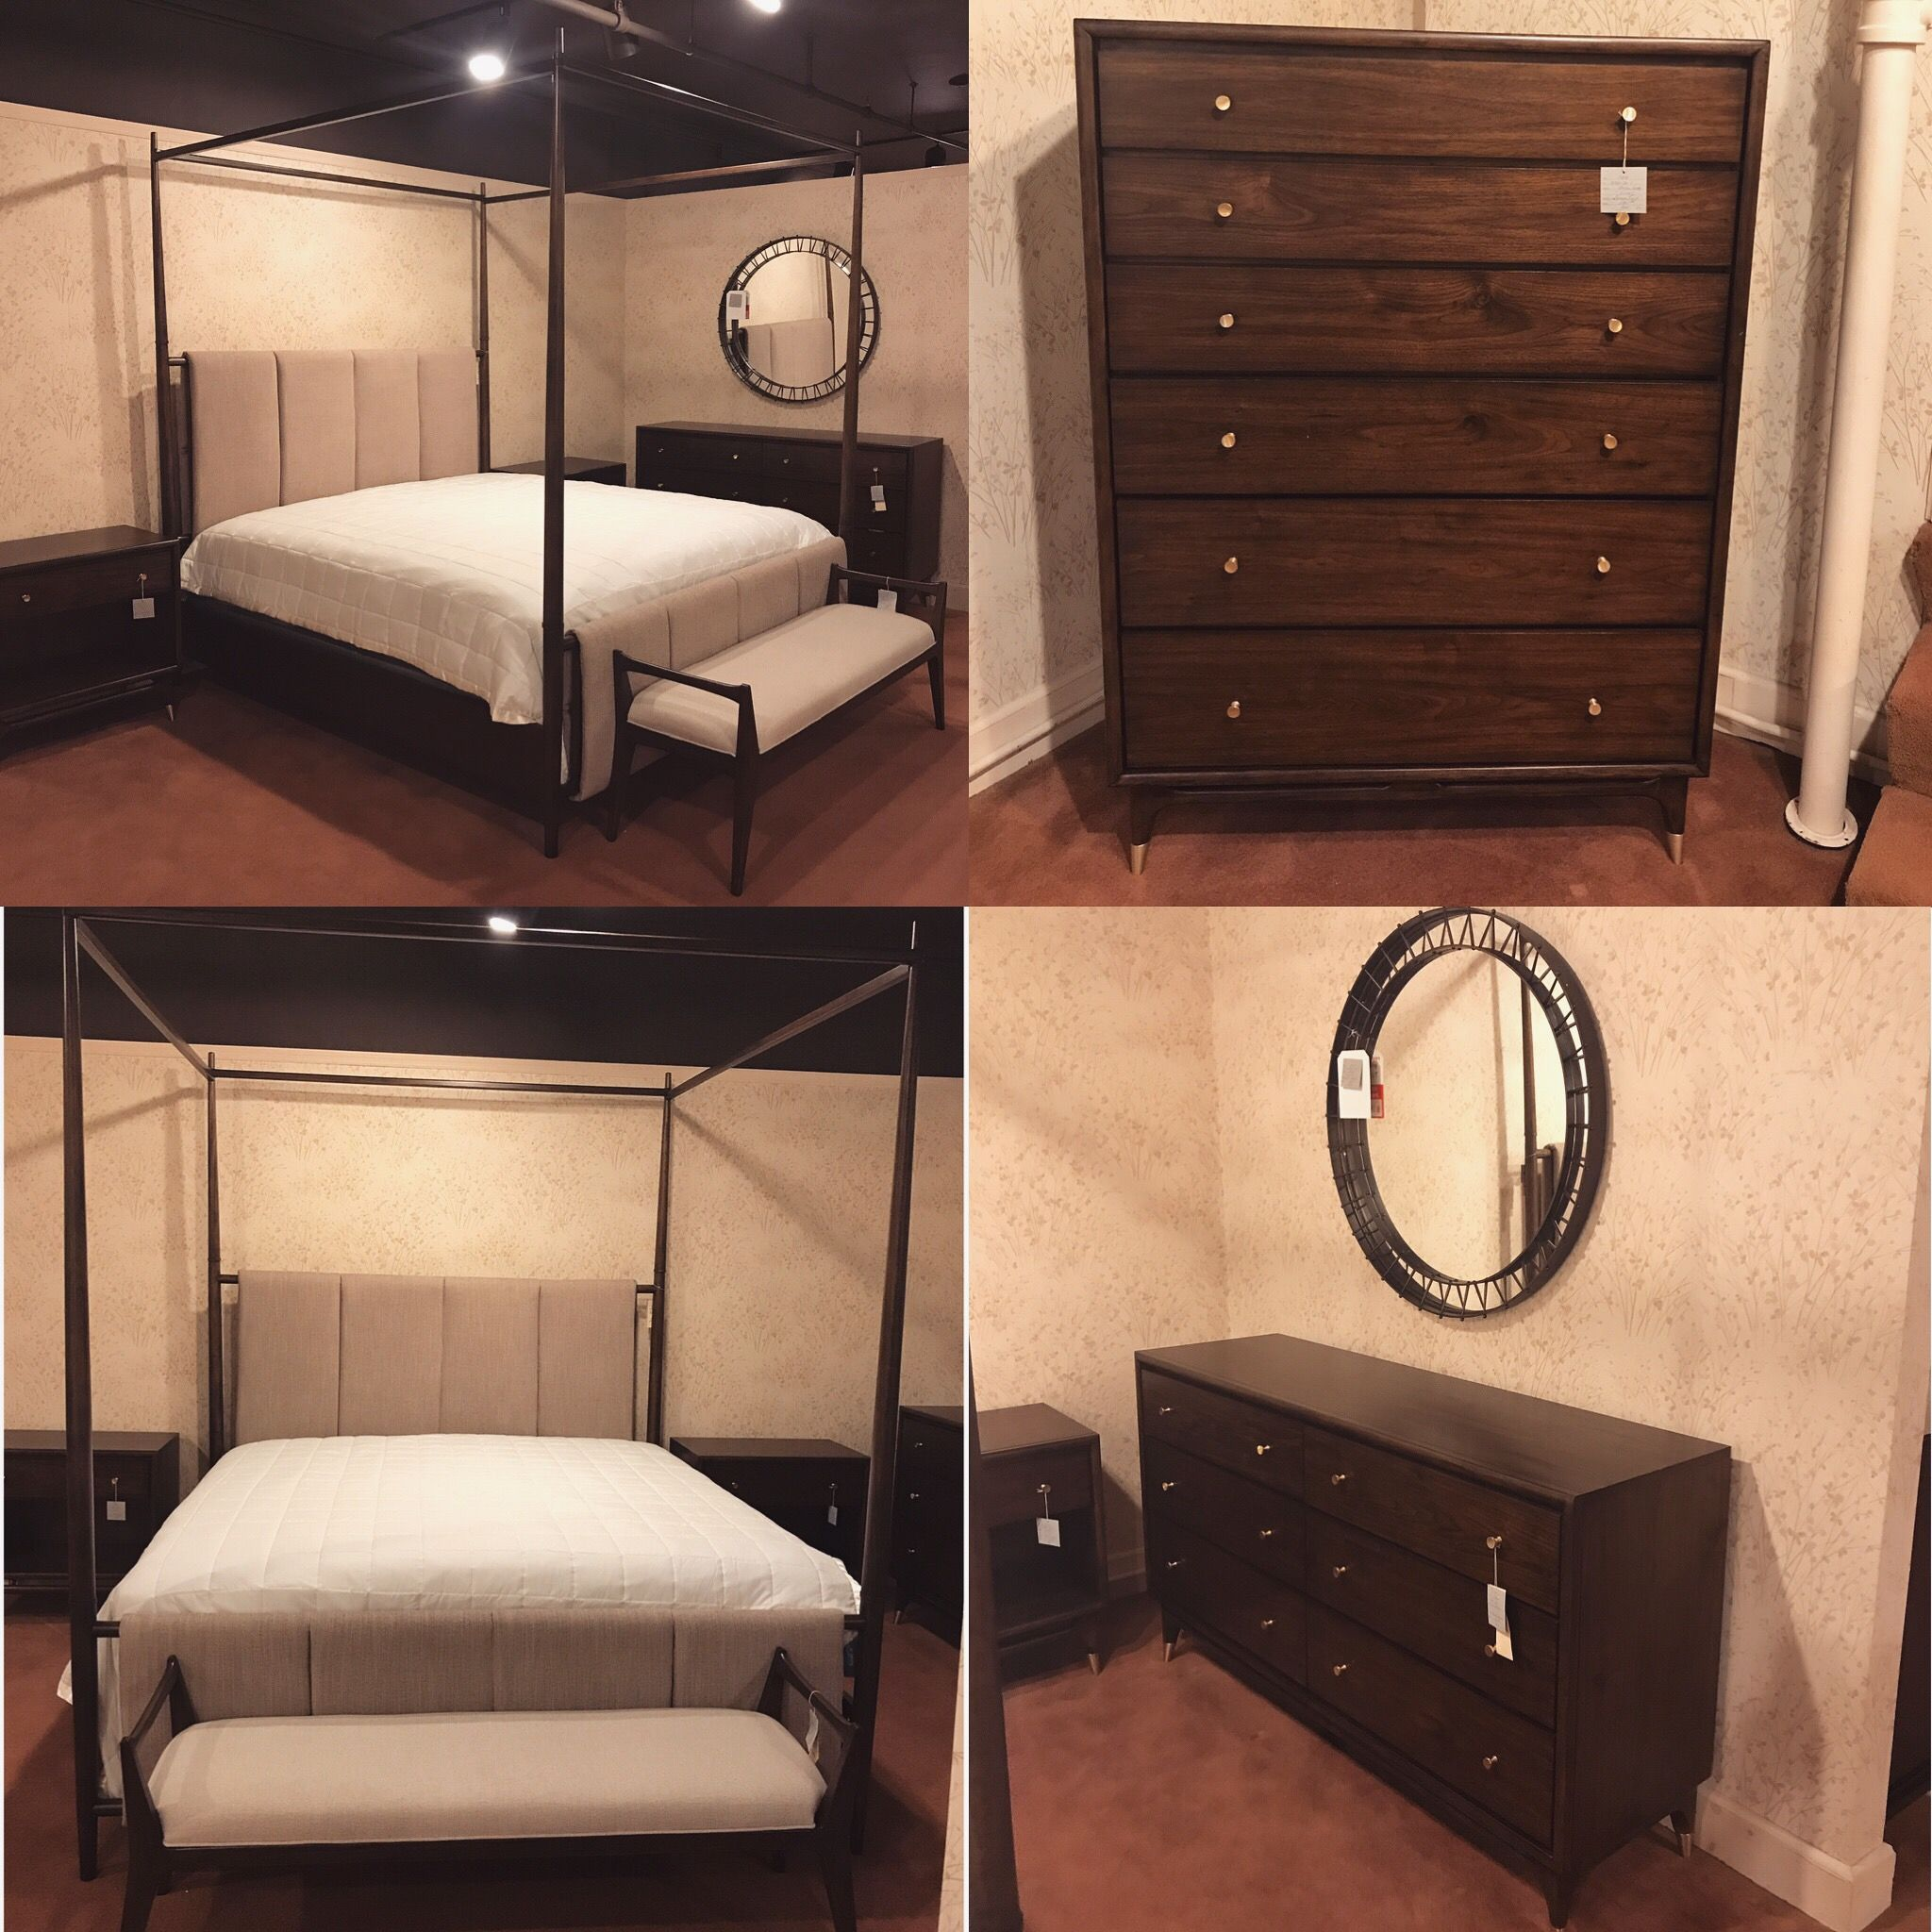 Check out this new and beautiful canopy bedroom set. We're